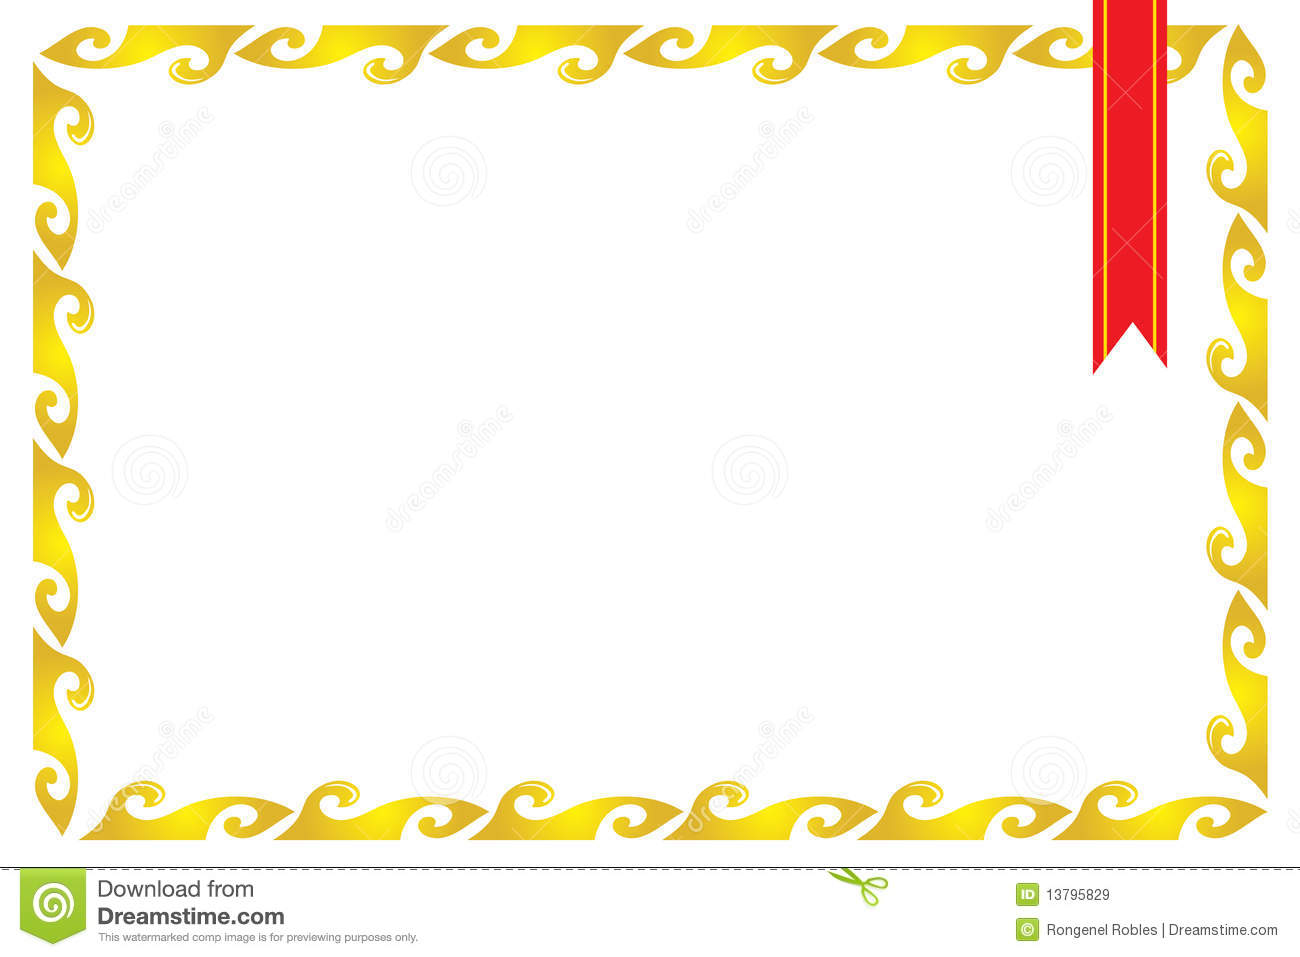 Royalty Free Stock Images Frame Border Certificate Image13795829 on Free Clipart Preschool Borders